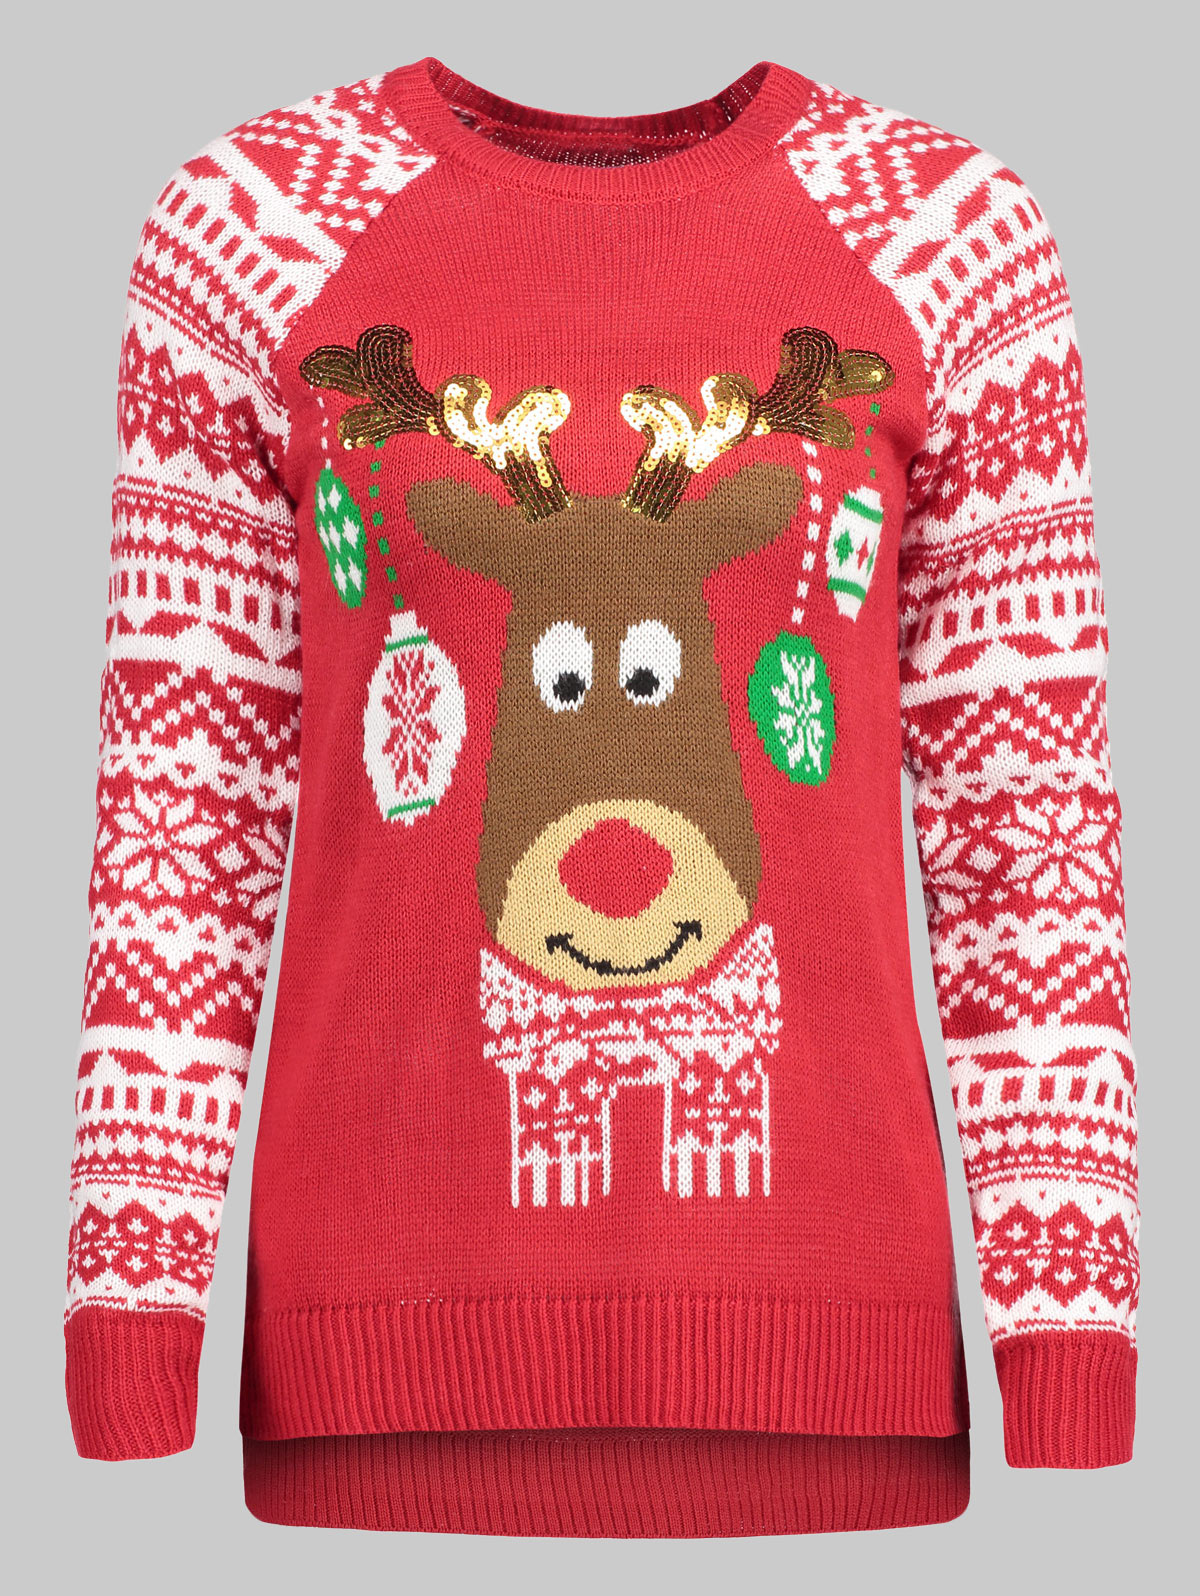 69fddce698c Wipalo Women Plus Size Christmas Reindeer Pullover Sweater Casual Crew Neck Raglan  Sleeve Fall Winter Ugly Christmas Sweater-in Pullovers from Women s ...